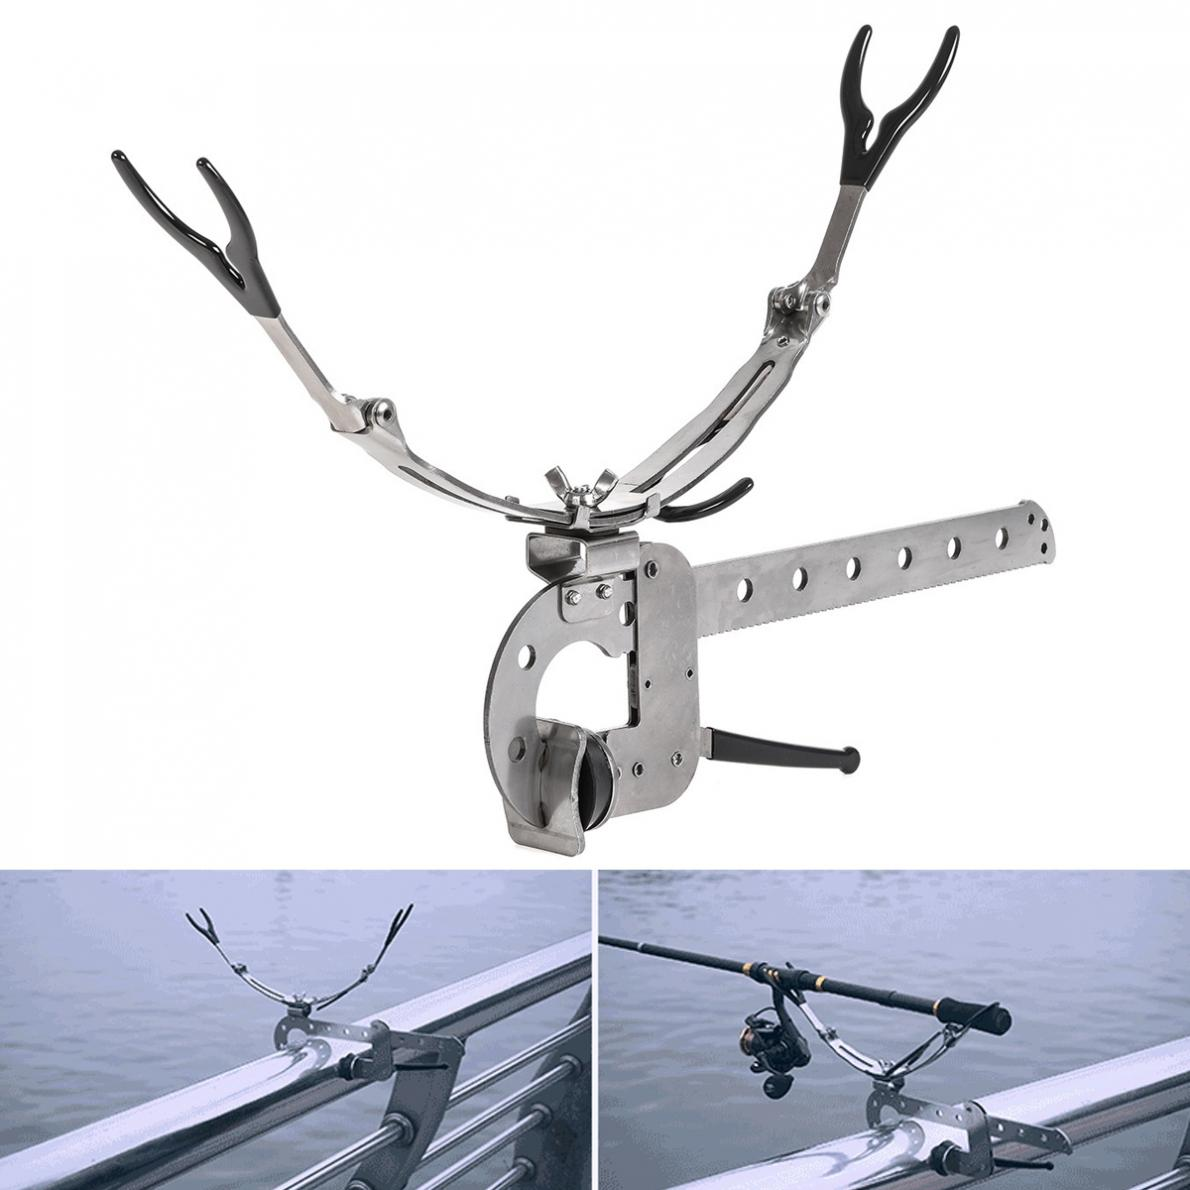 Stainless Steel Fishing Rod Support Stand Clamp Holder for Boat Canoe Kayak